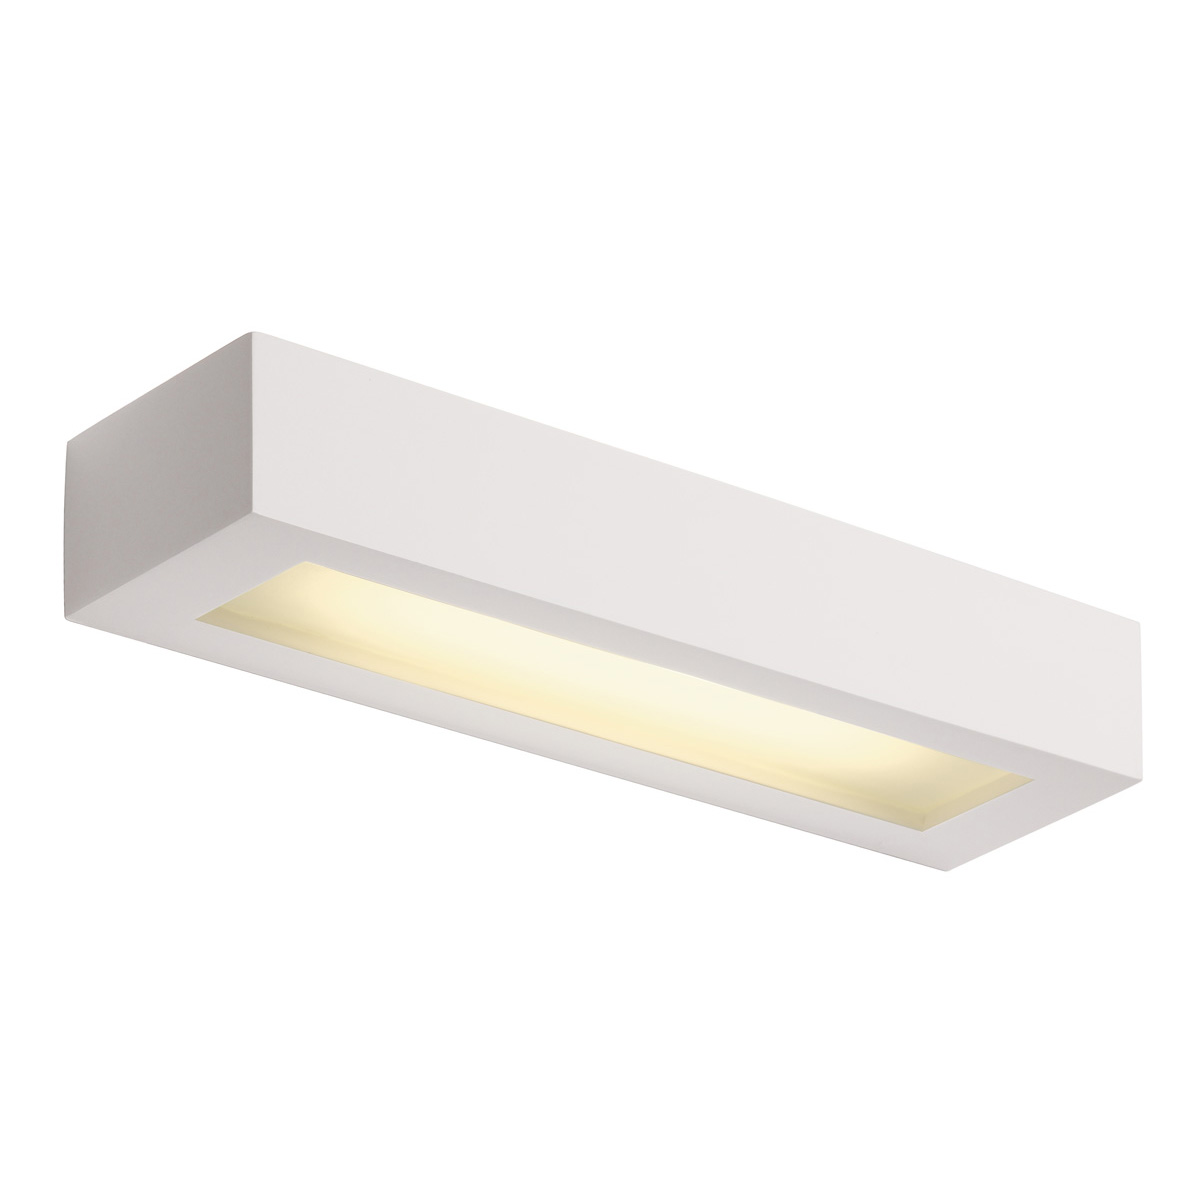 Details About Intalite Wall Light Gl 103 T5 Square White Plaster 8w